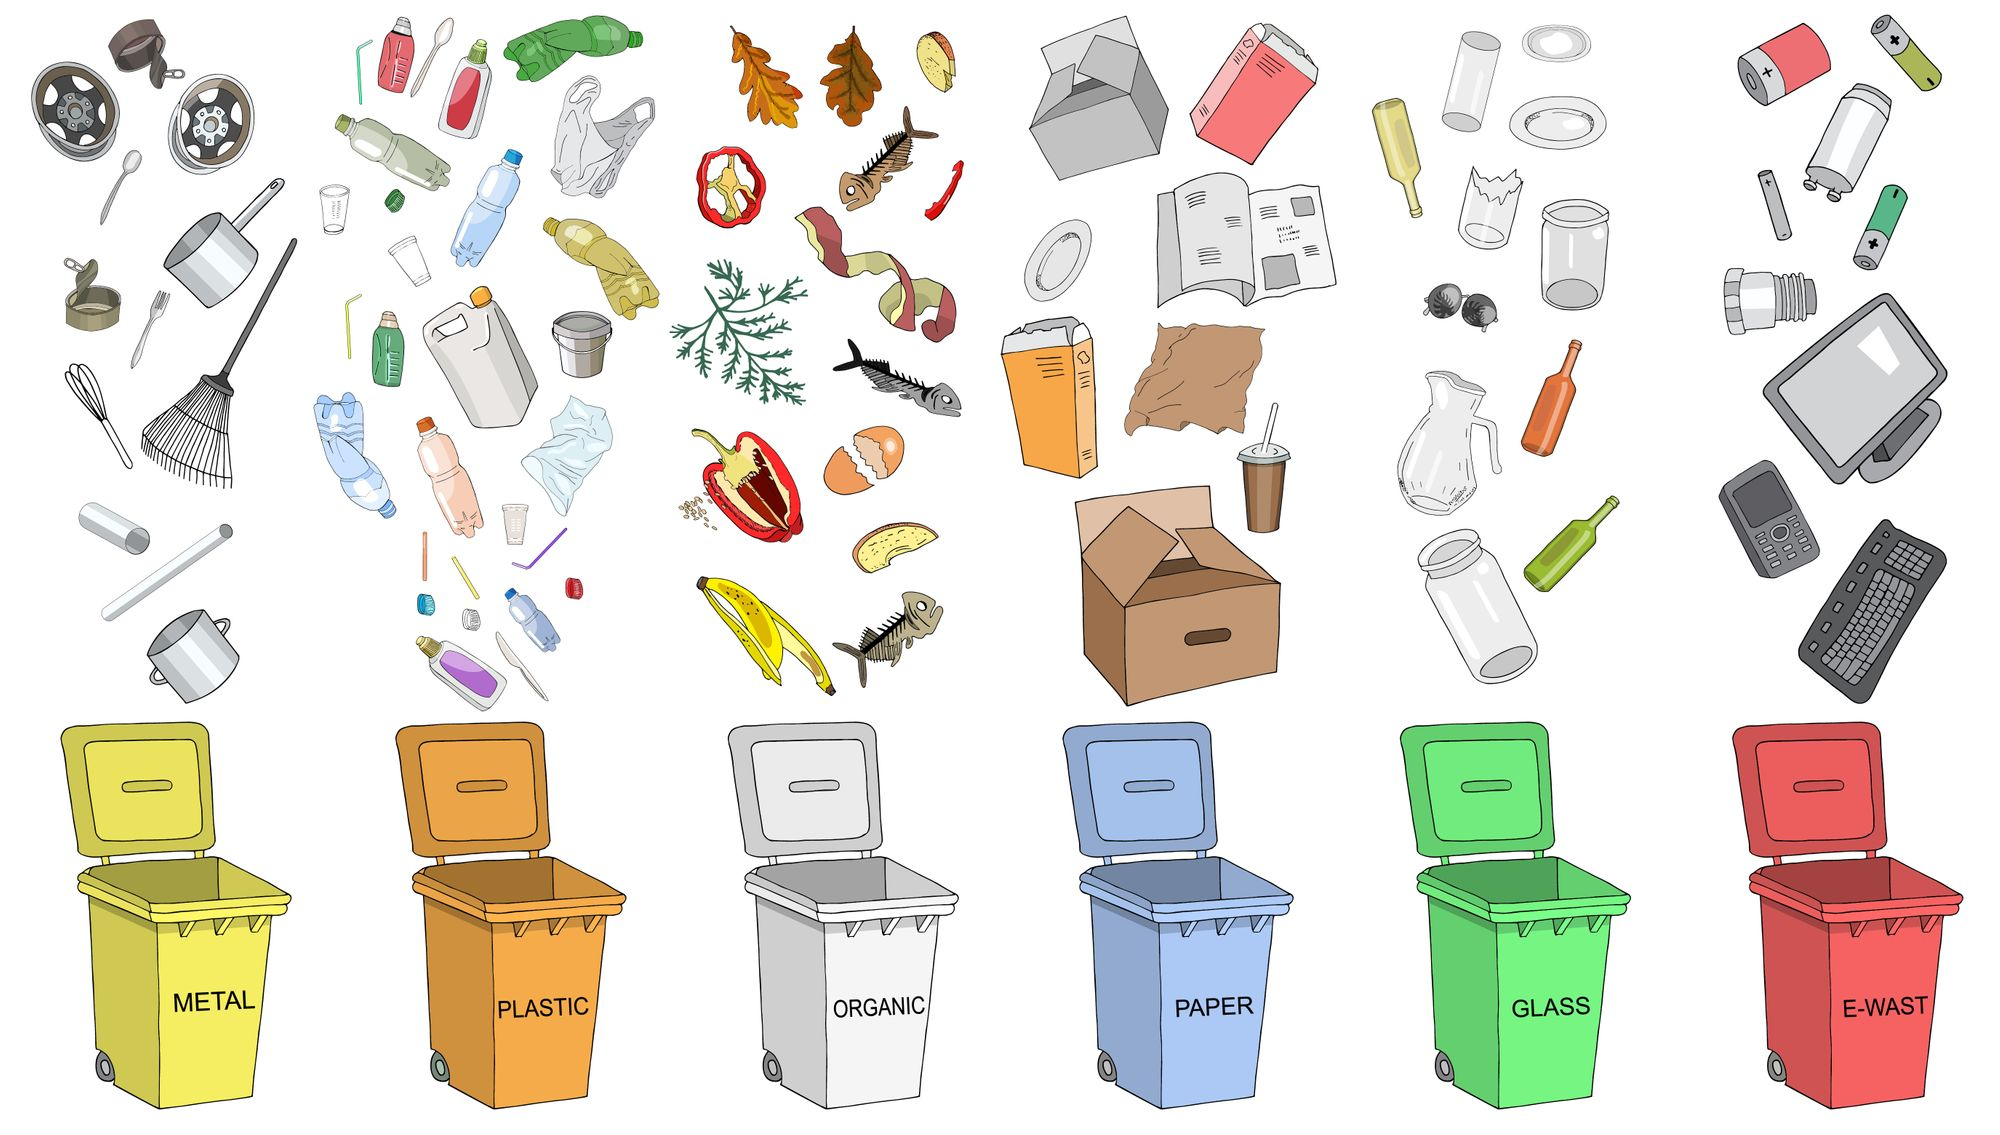 What is Non-Biodegradable Waste? Why does this need our attention?